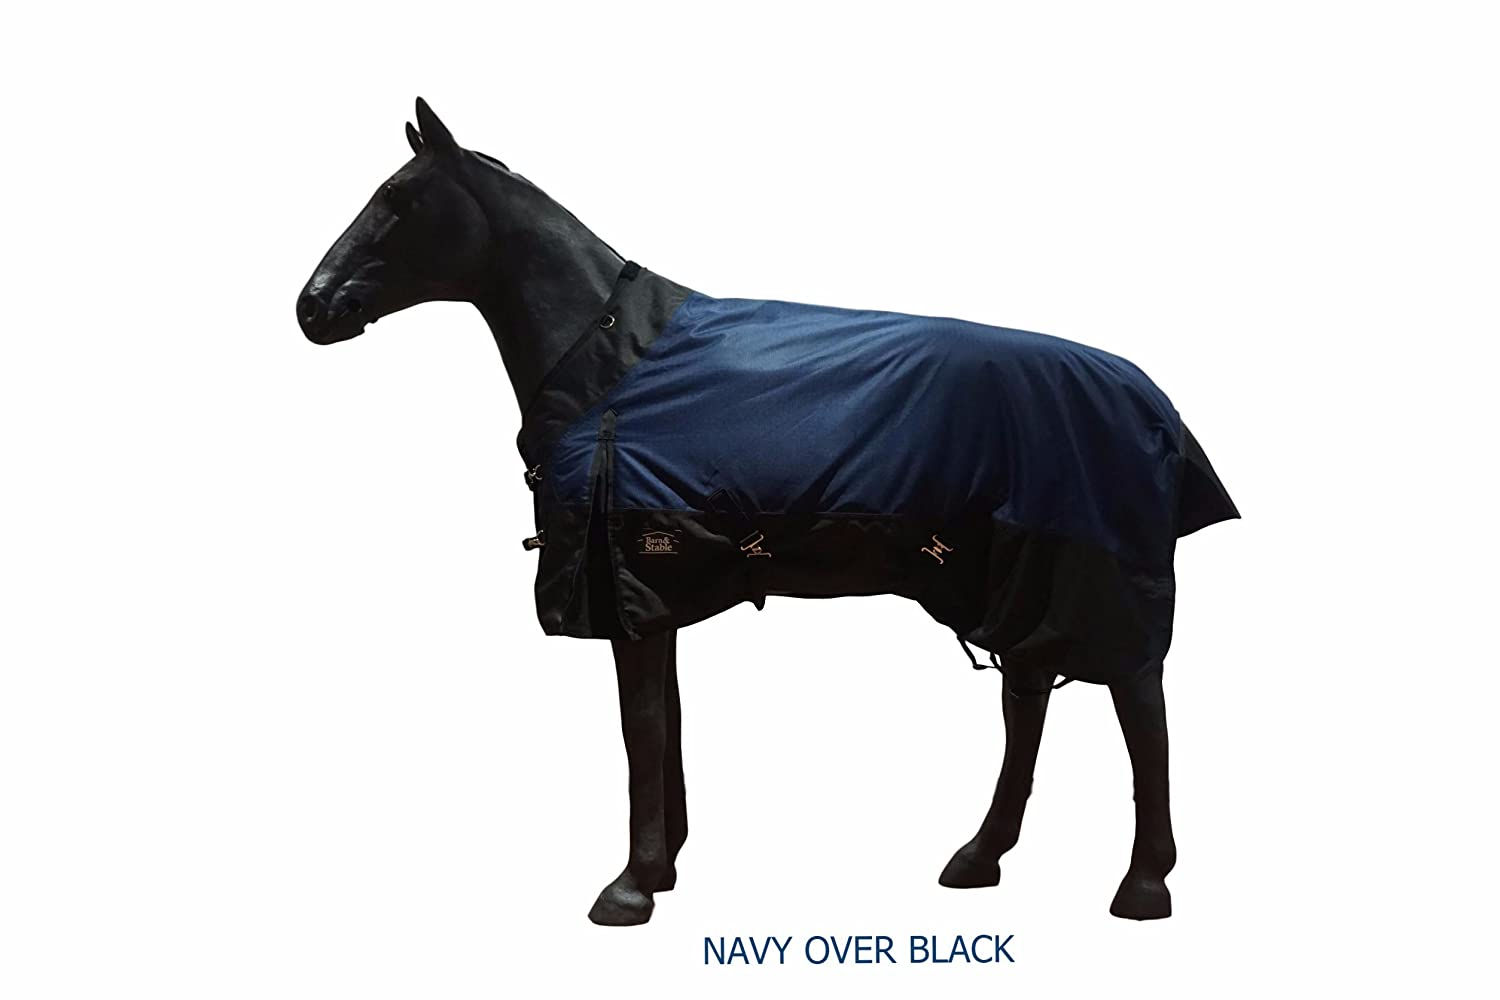 Horse Blanket Turnout Blanket 1200D Ripstop, 210D Lining and 200grm Fill